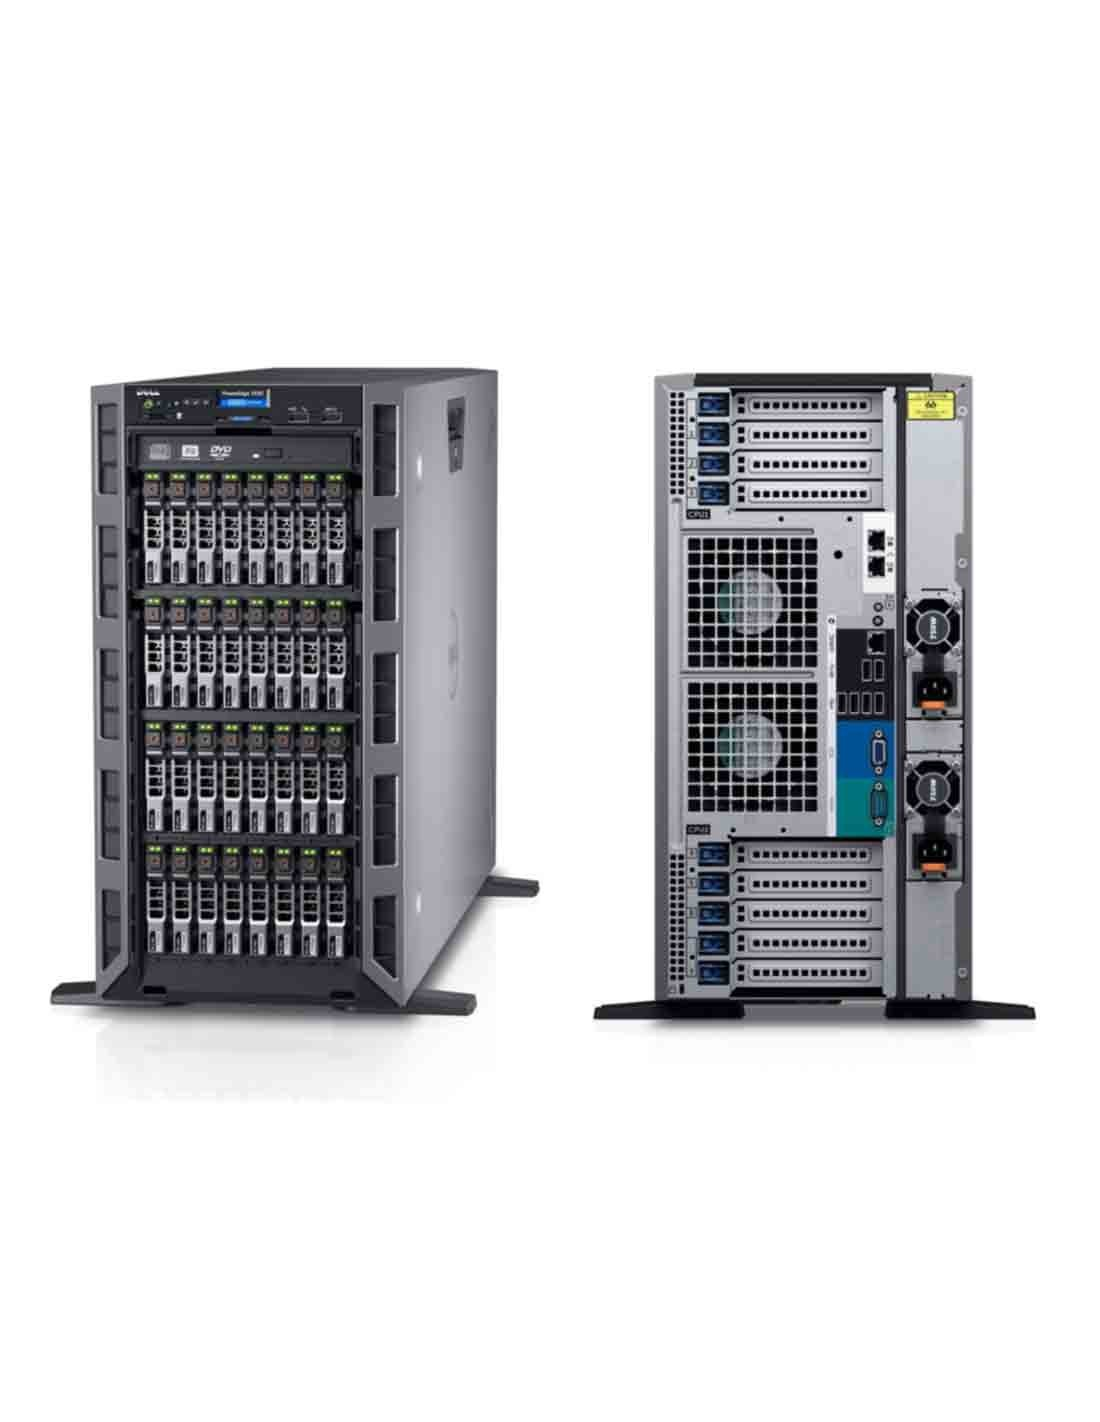 Dell PowerEdge T630 Tower Server delivers greater versatility and maximize operational efficiency